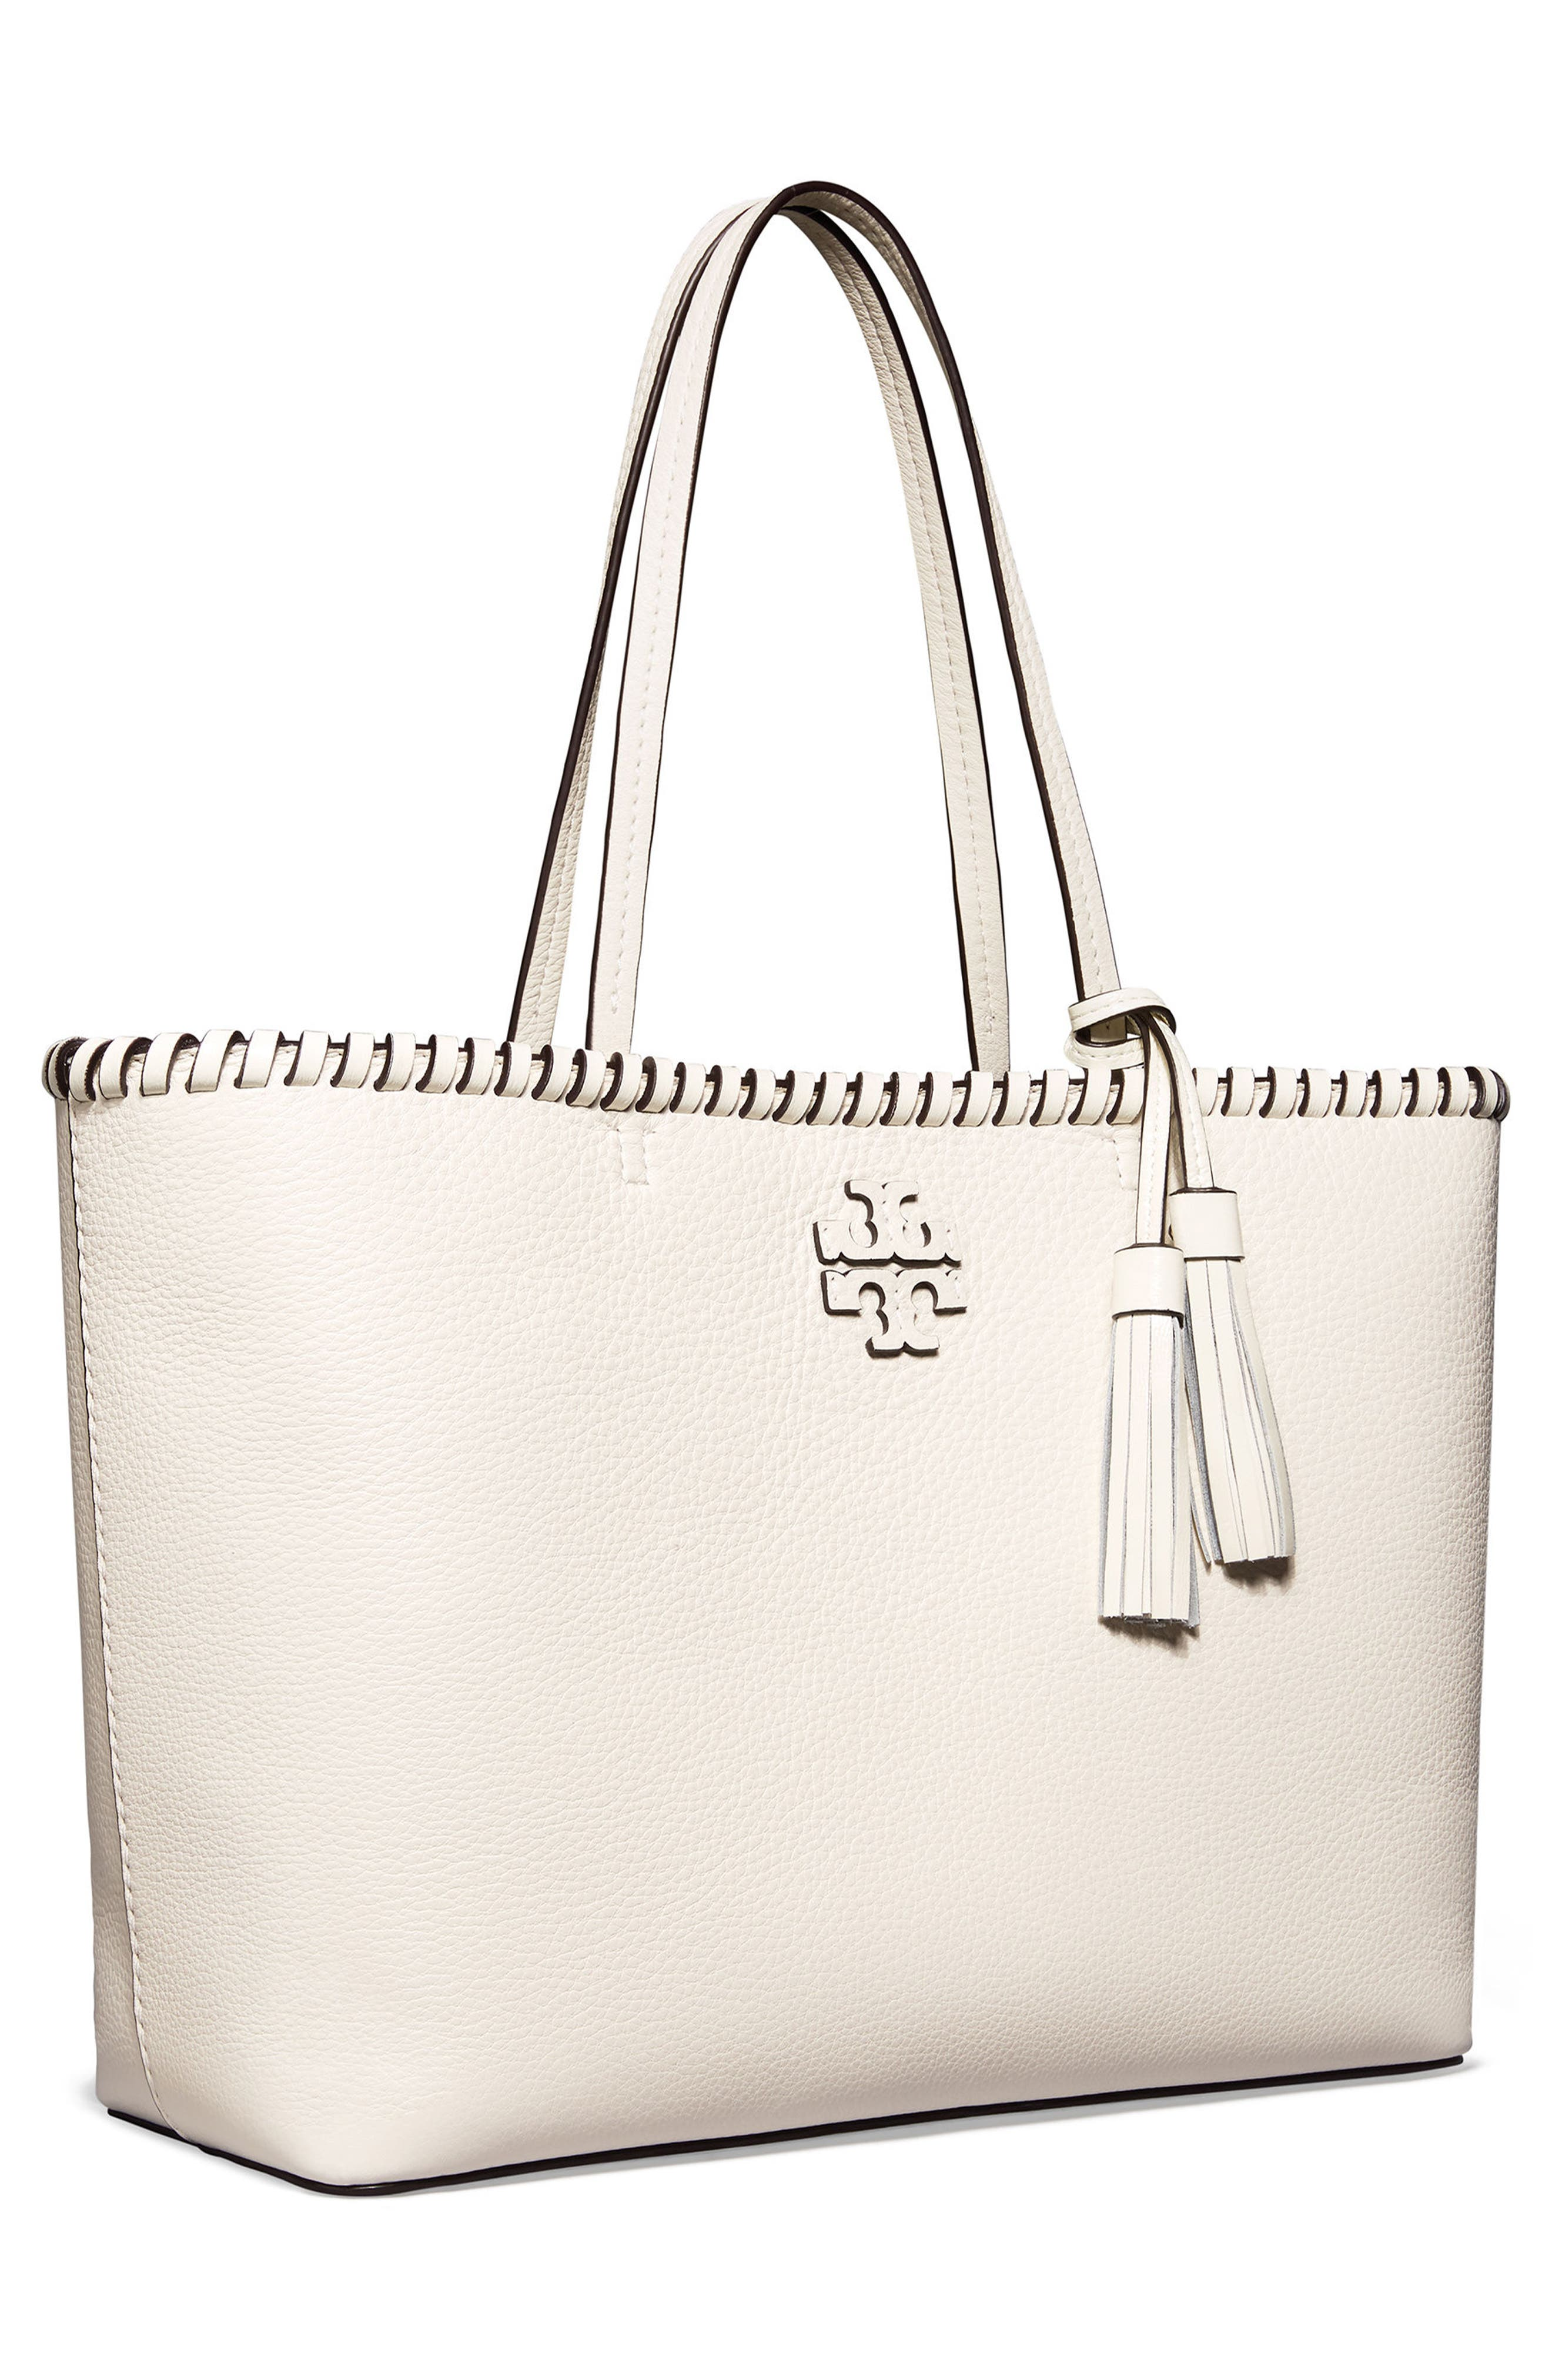 McGraw Whipstitch Leather Tote,                             Alternate thumbnail 2, color,